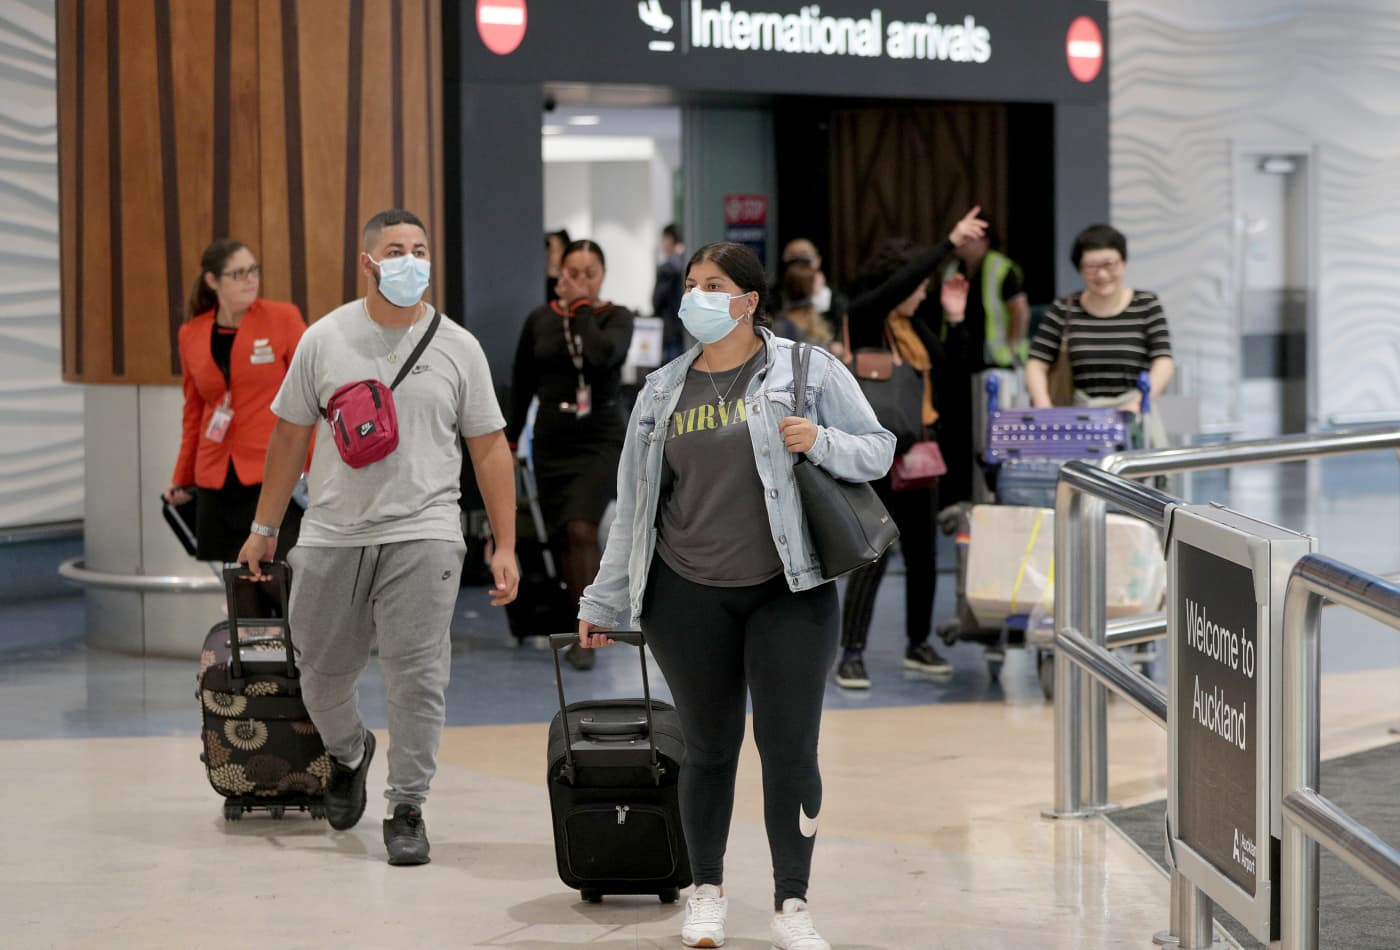 Coronavirus live updates: New Zealand reports first case, Tokyo Disneyland temporarily shuts down